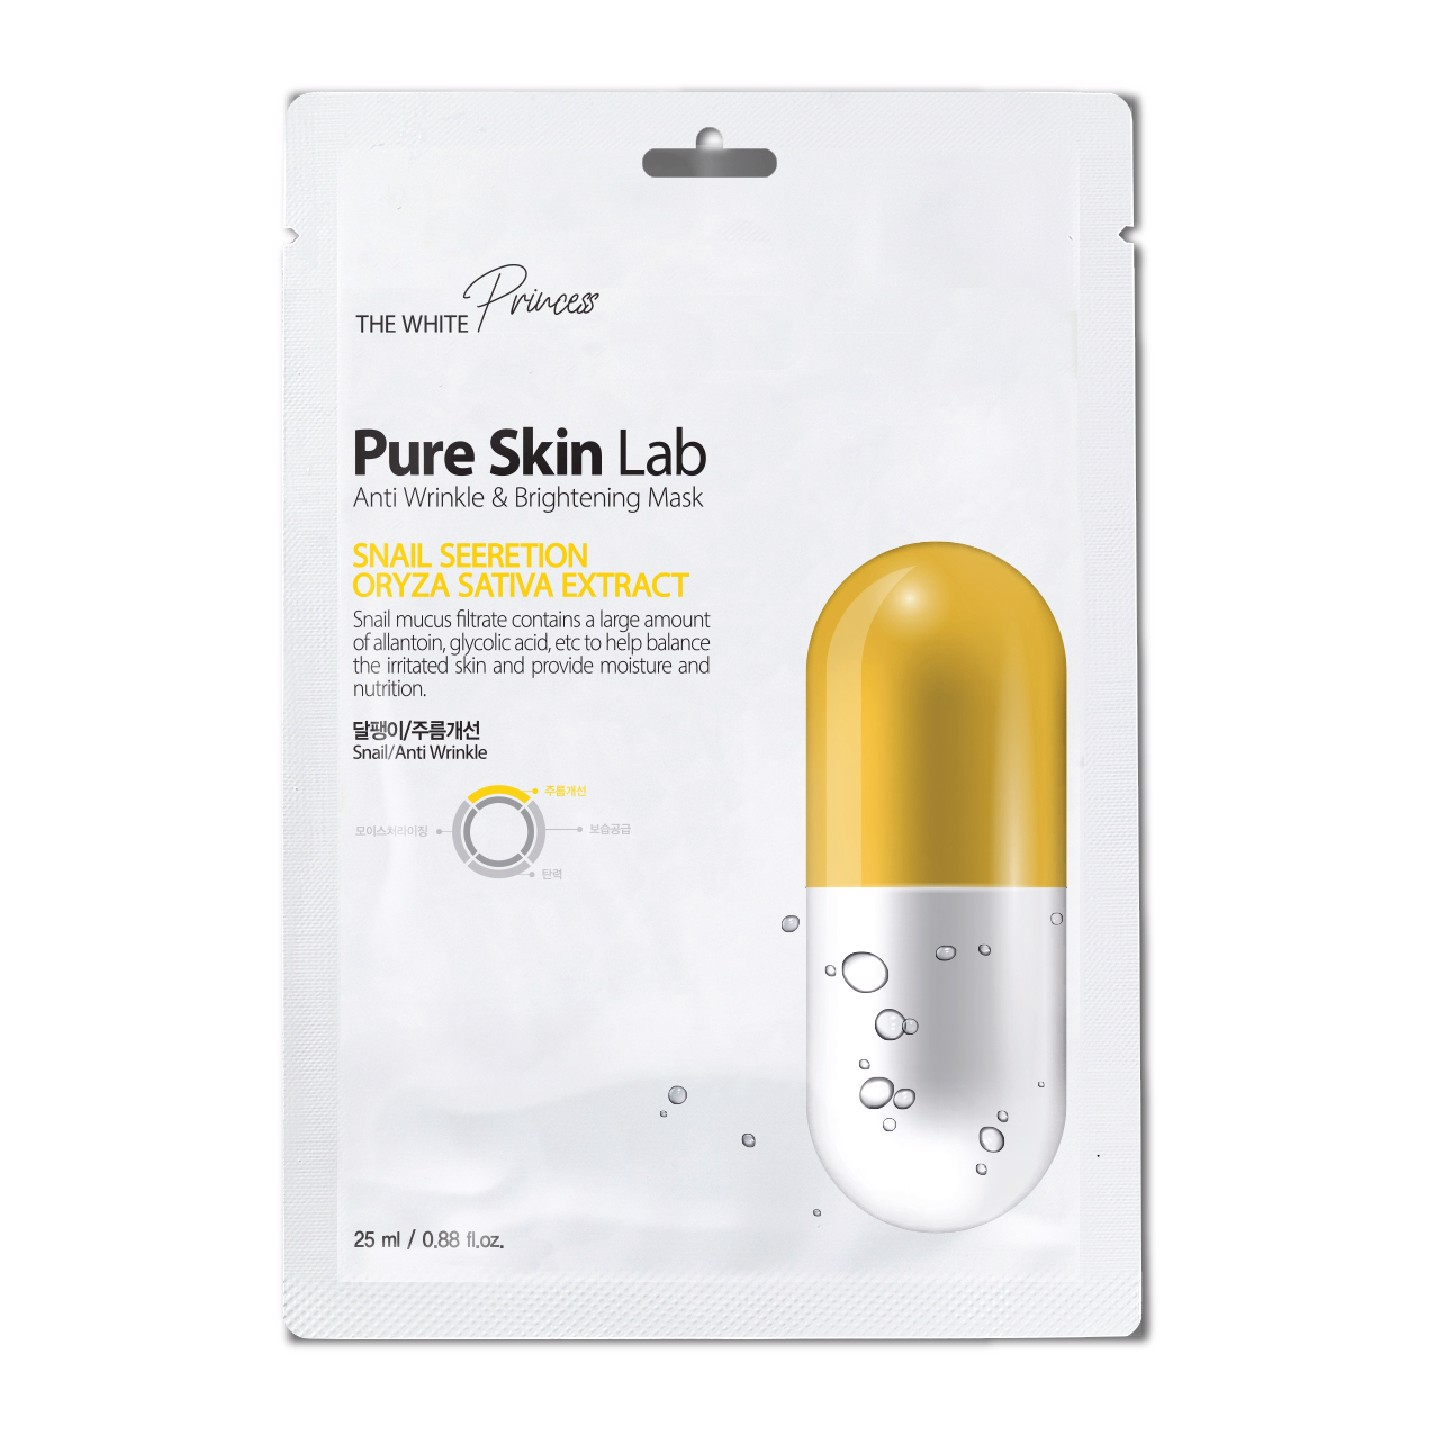 Mặt nạ giấy Pure Skin Lab - Snail